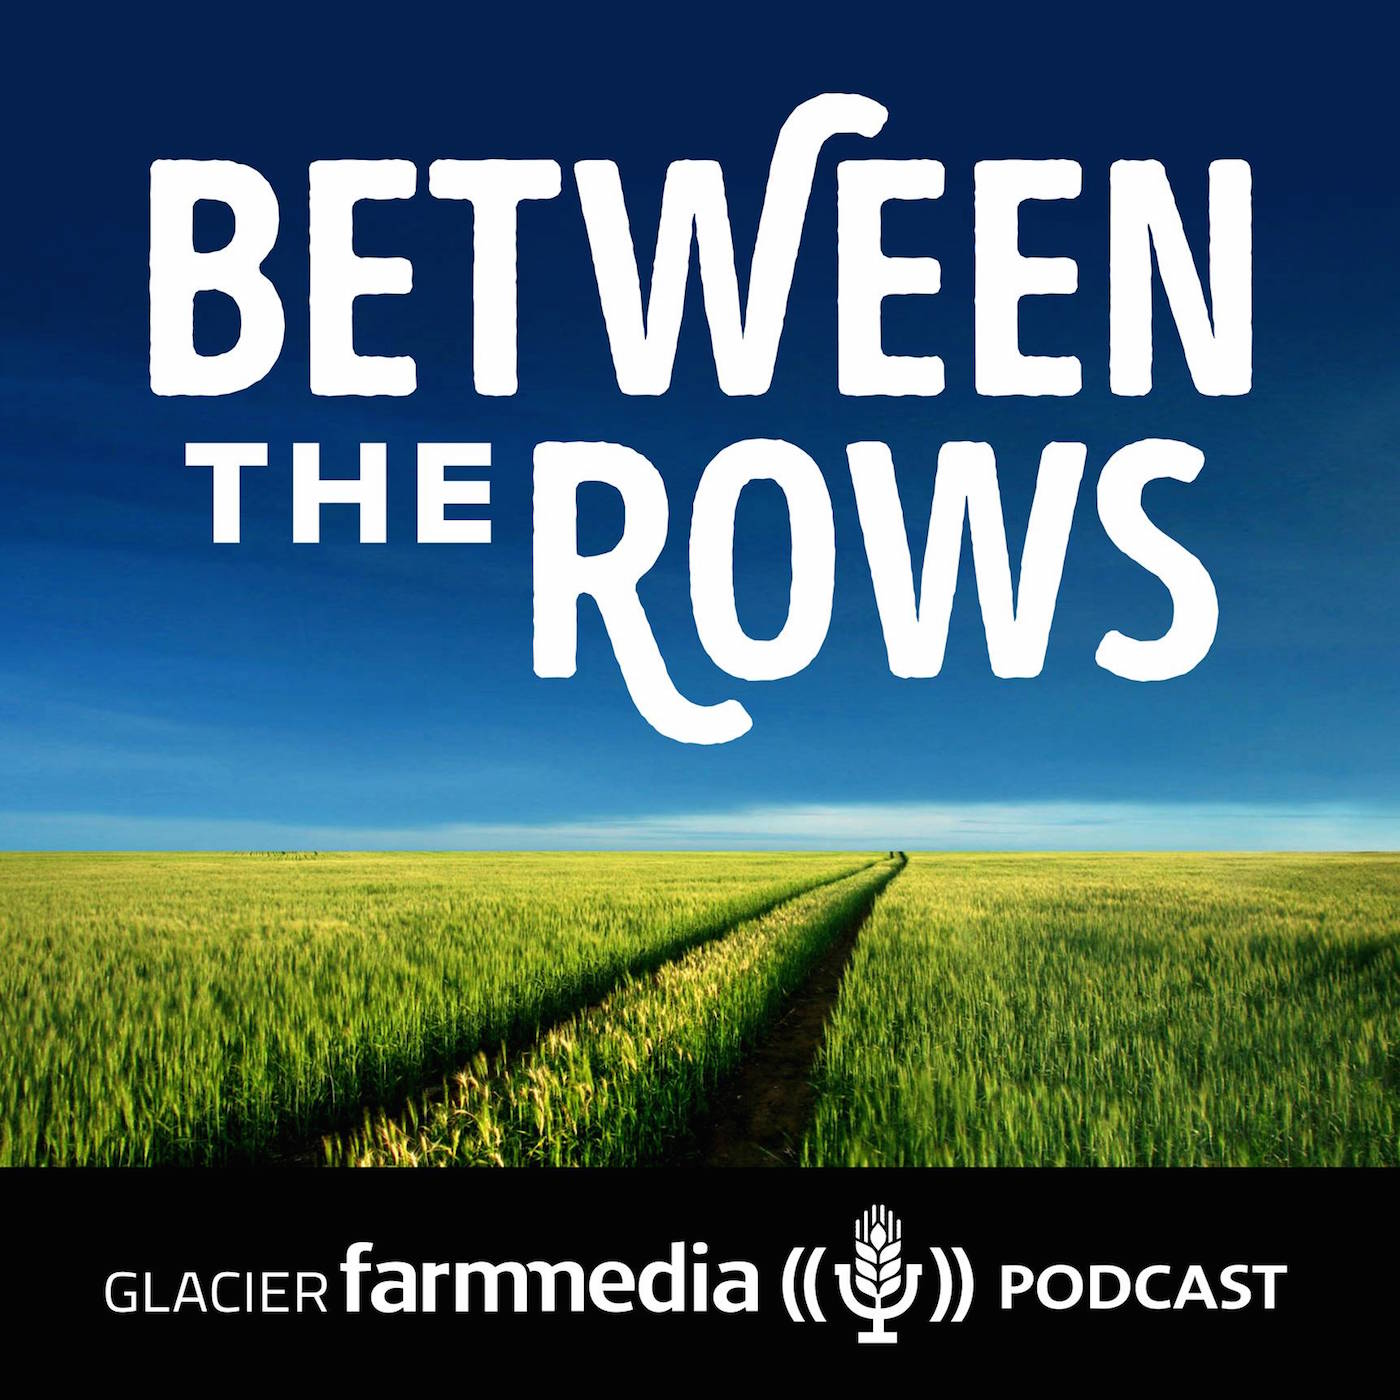 between-the-rows